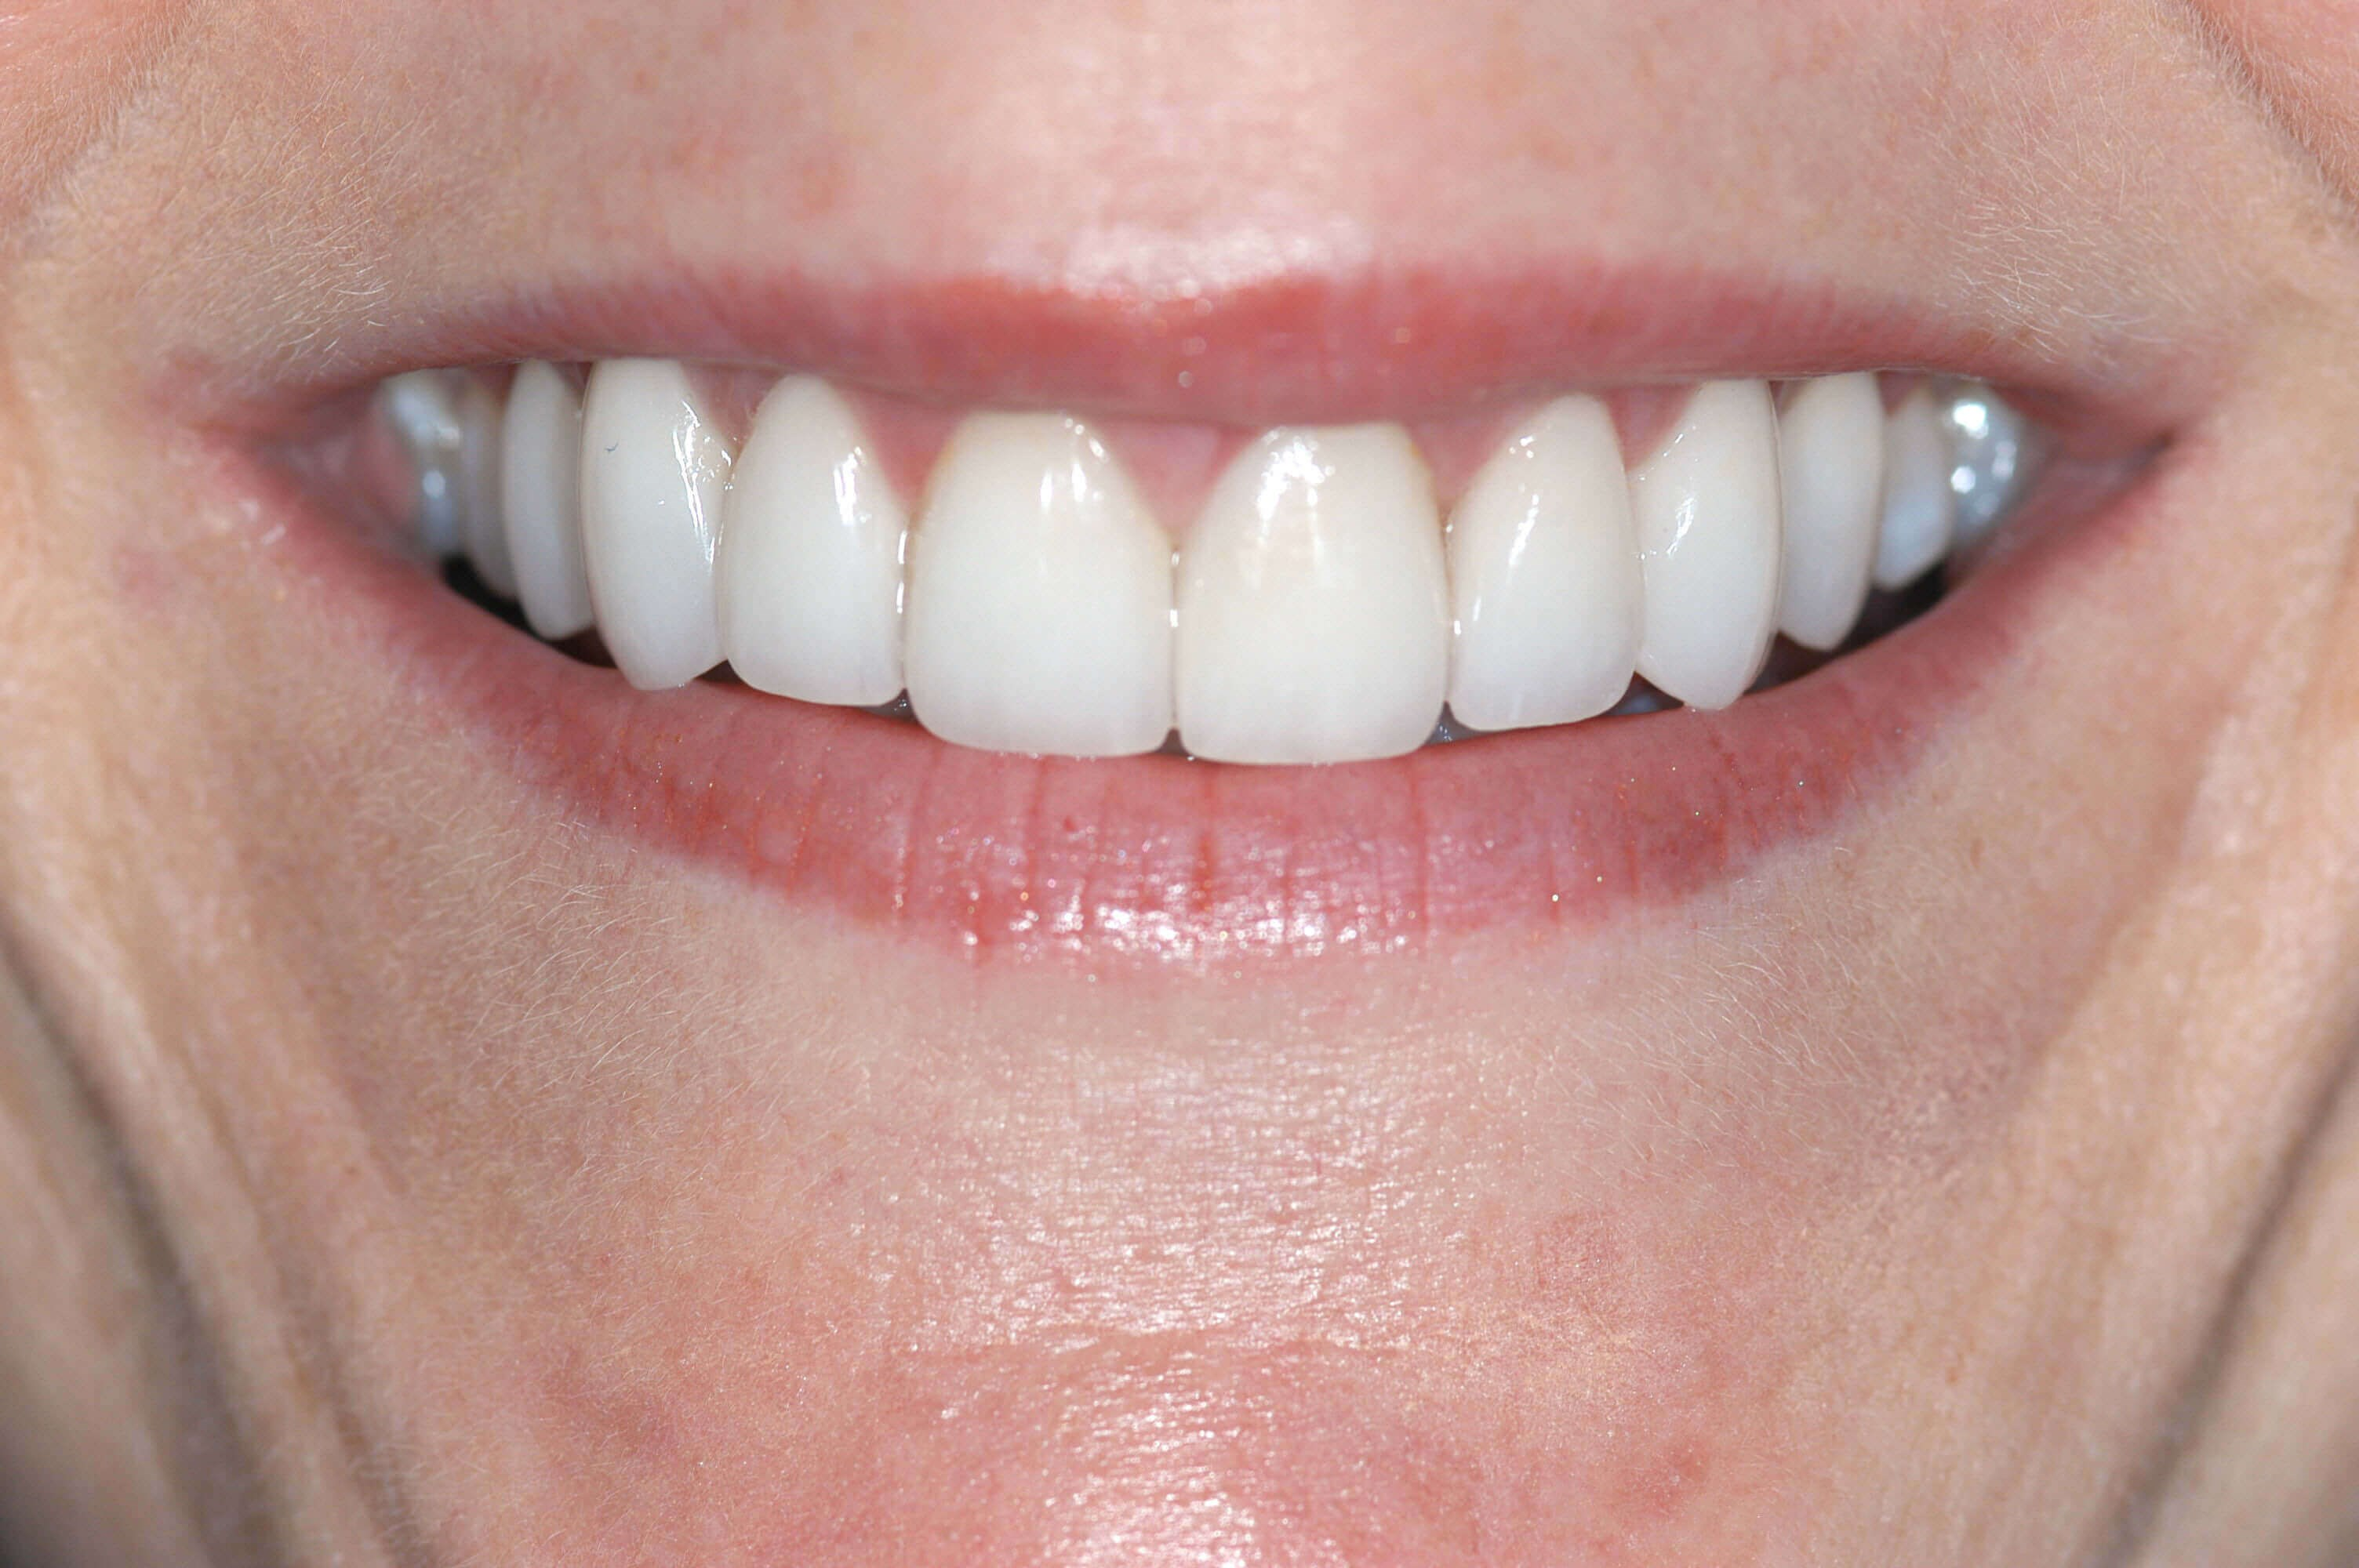 Before & After Dental Veneers After Smile Makeover